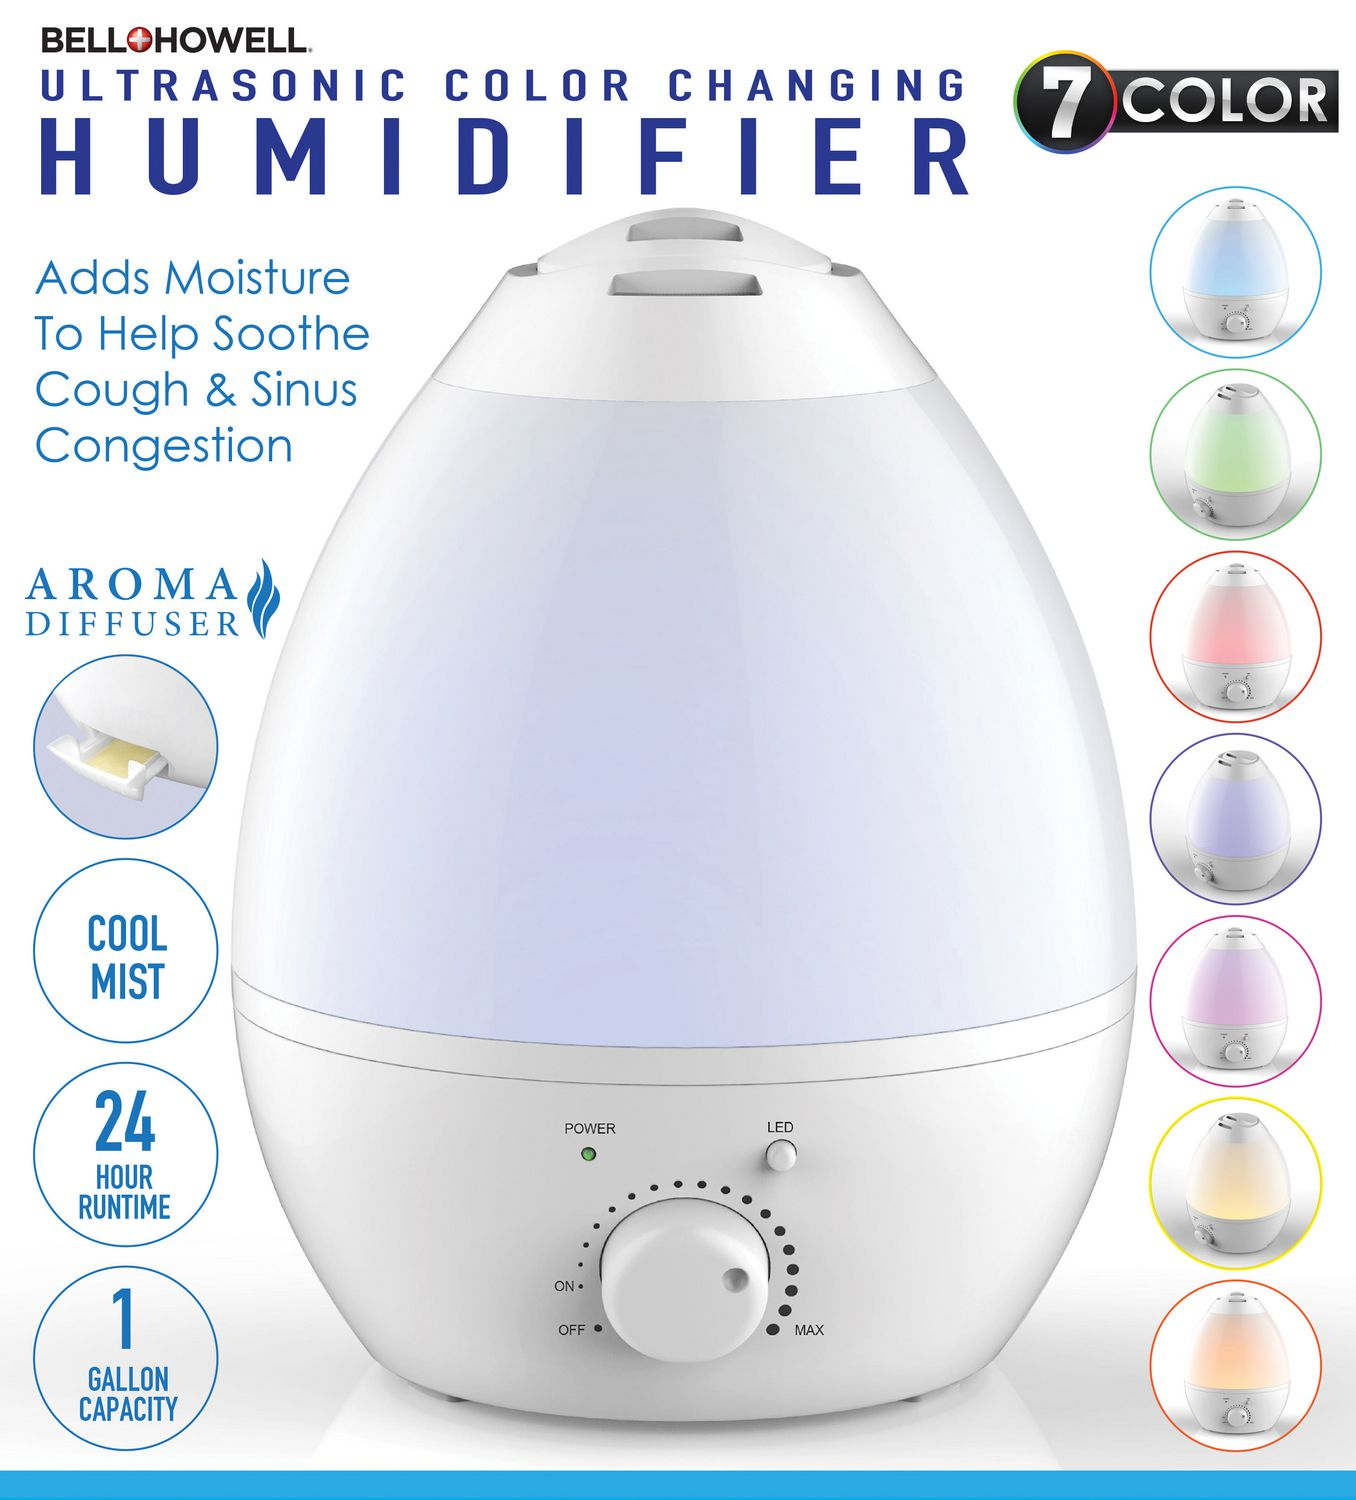 Bellhowell Ultrasonic Color Changing Humidifier Walmart Canada